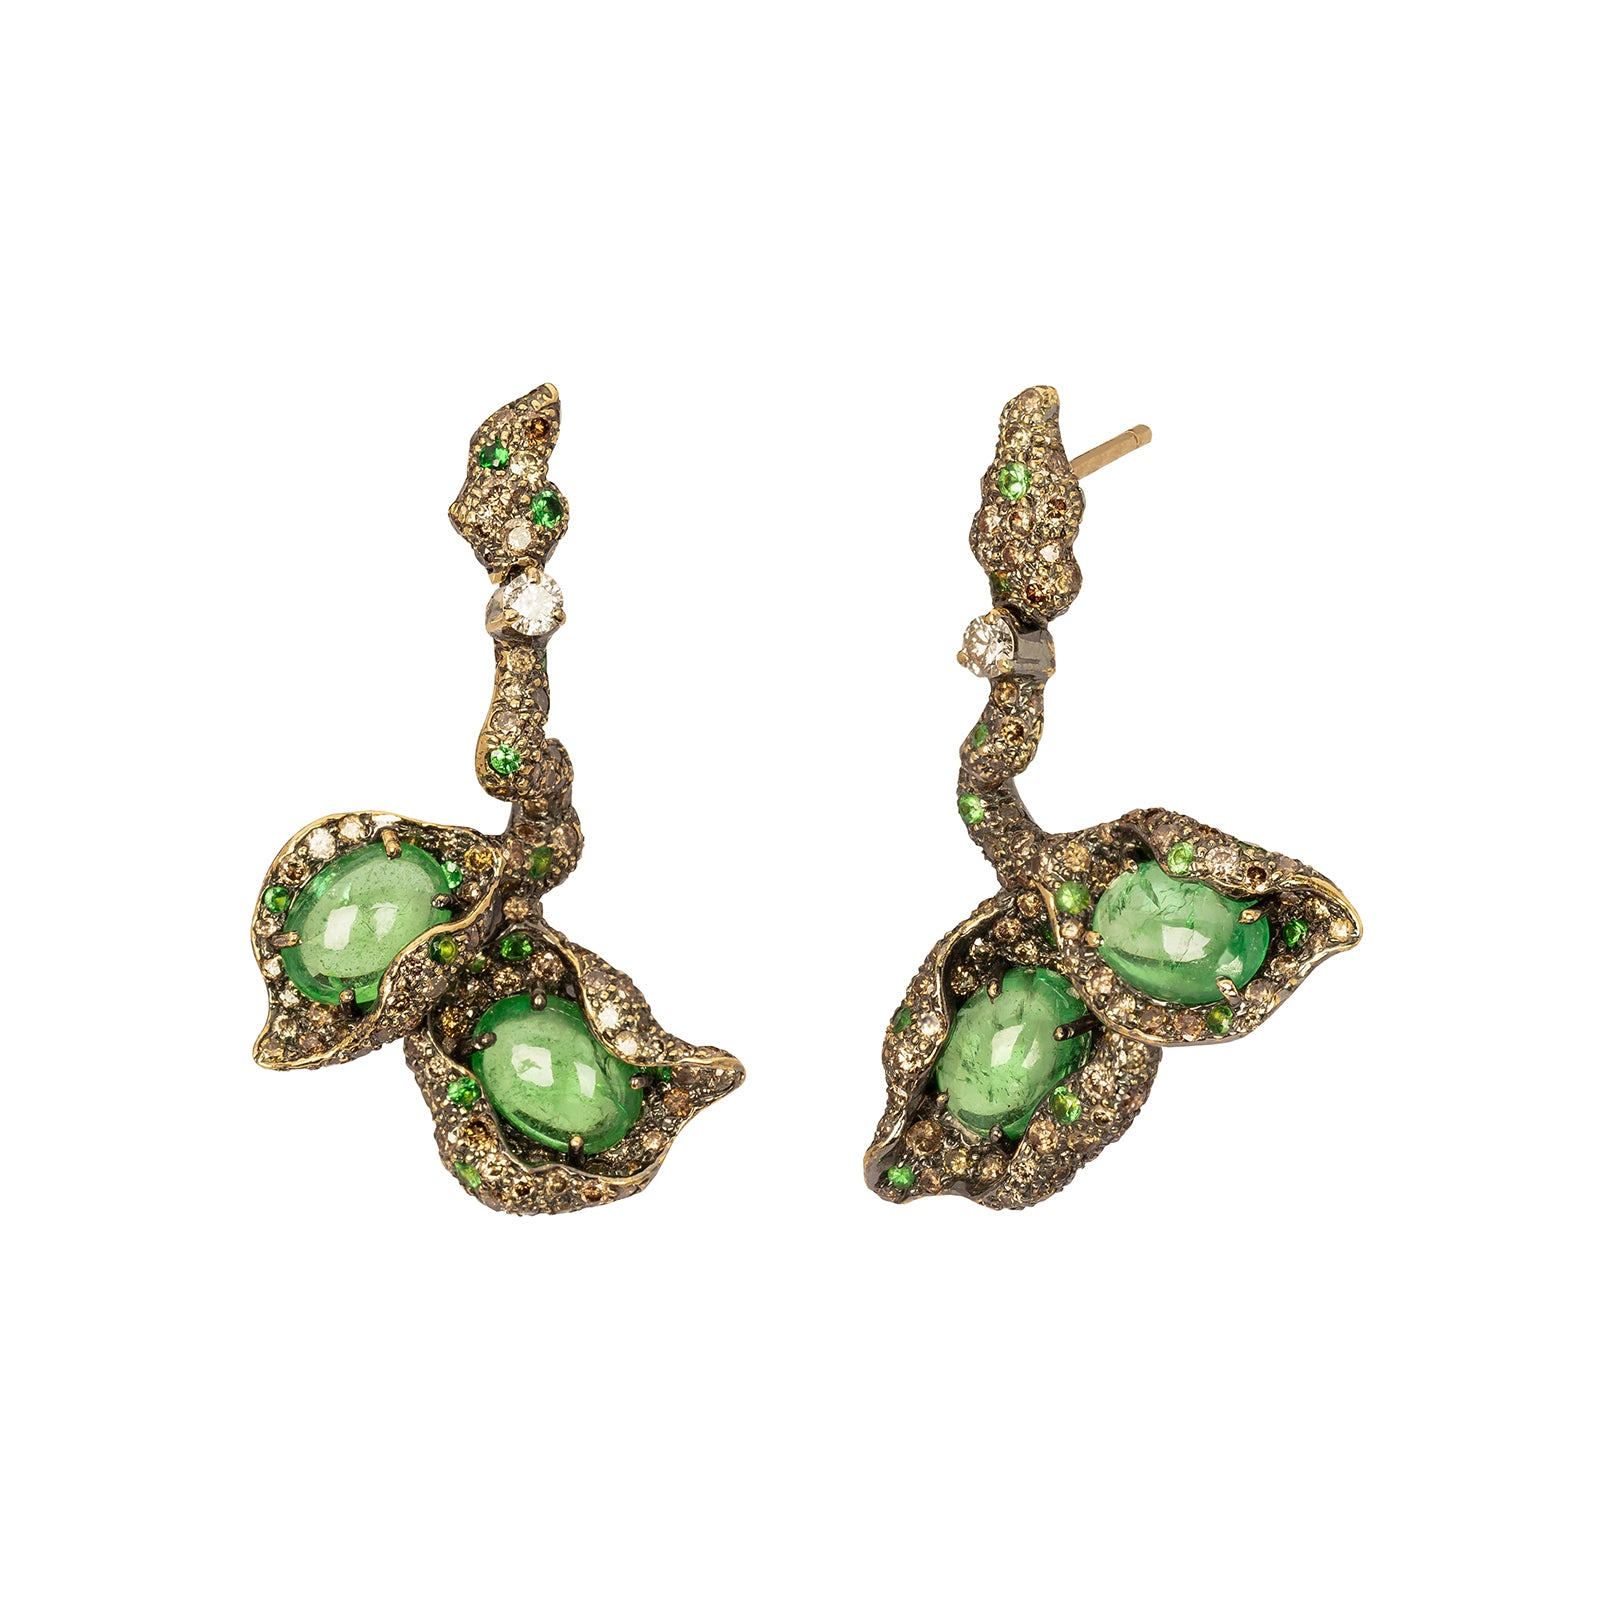 Arunashi Branch Earrings - Tsavorite - Earrings - Broken English Jewelry